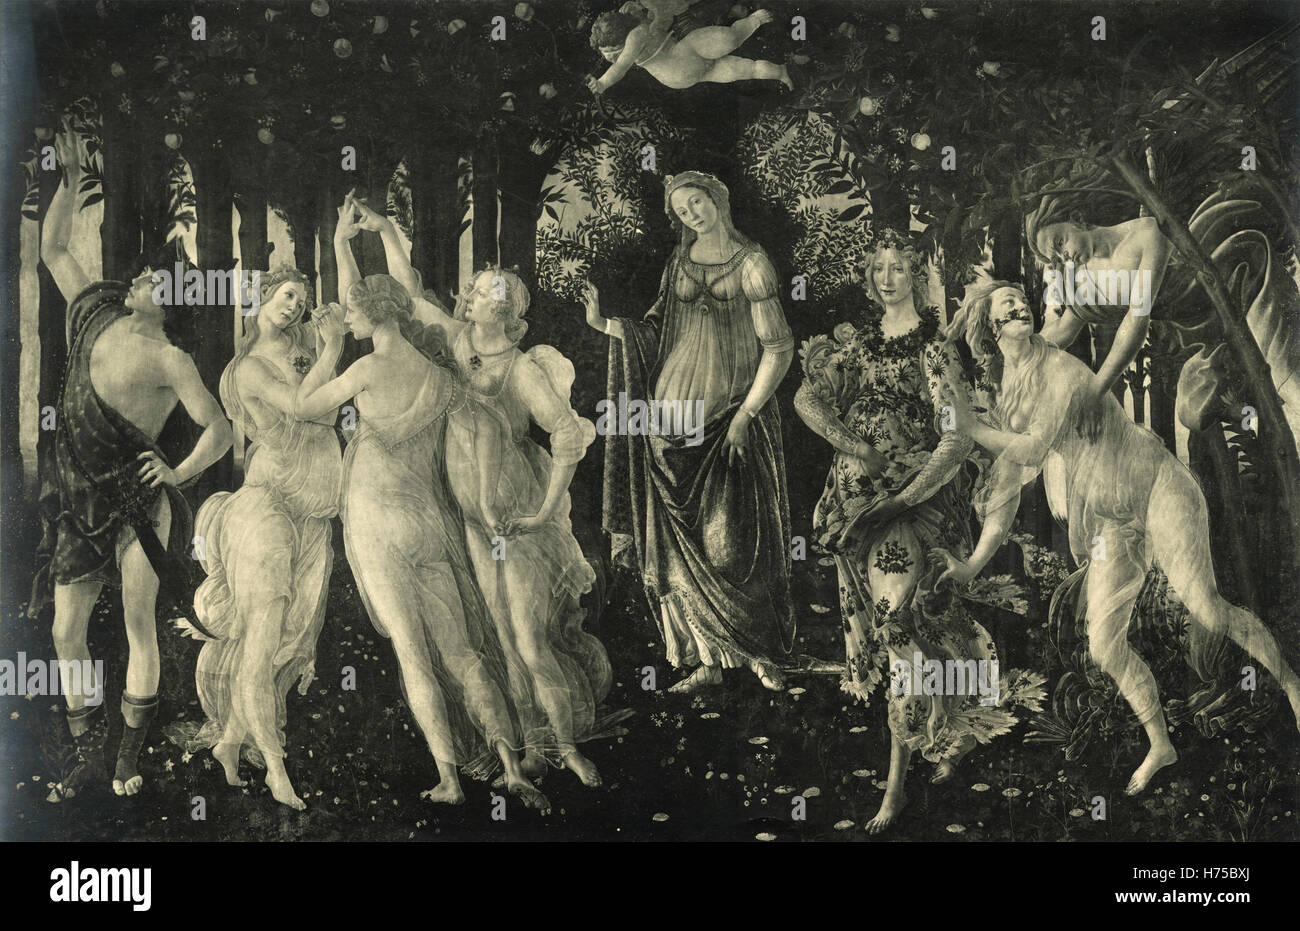 The Spring, painting by Botticelli, Italy - Stock Image